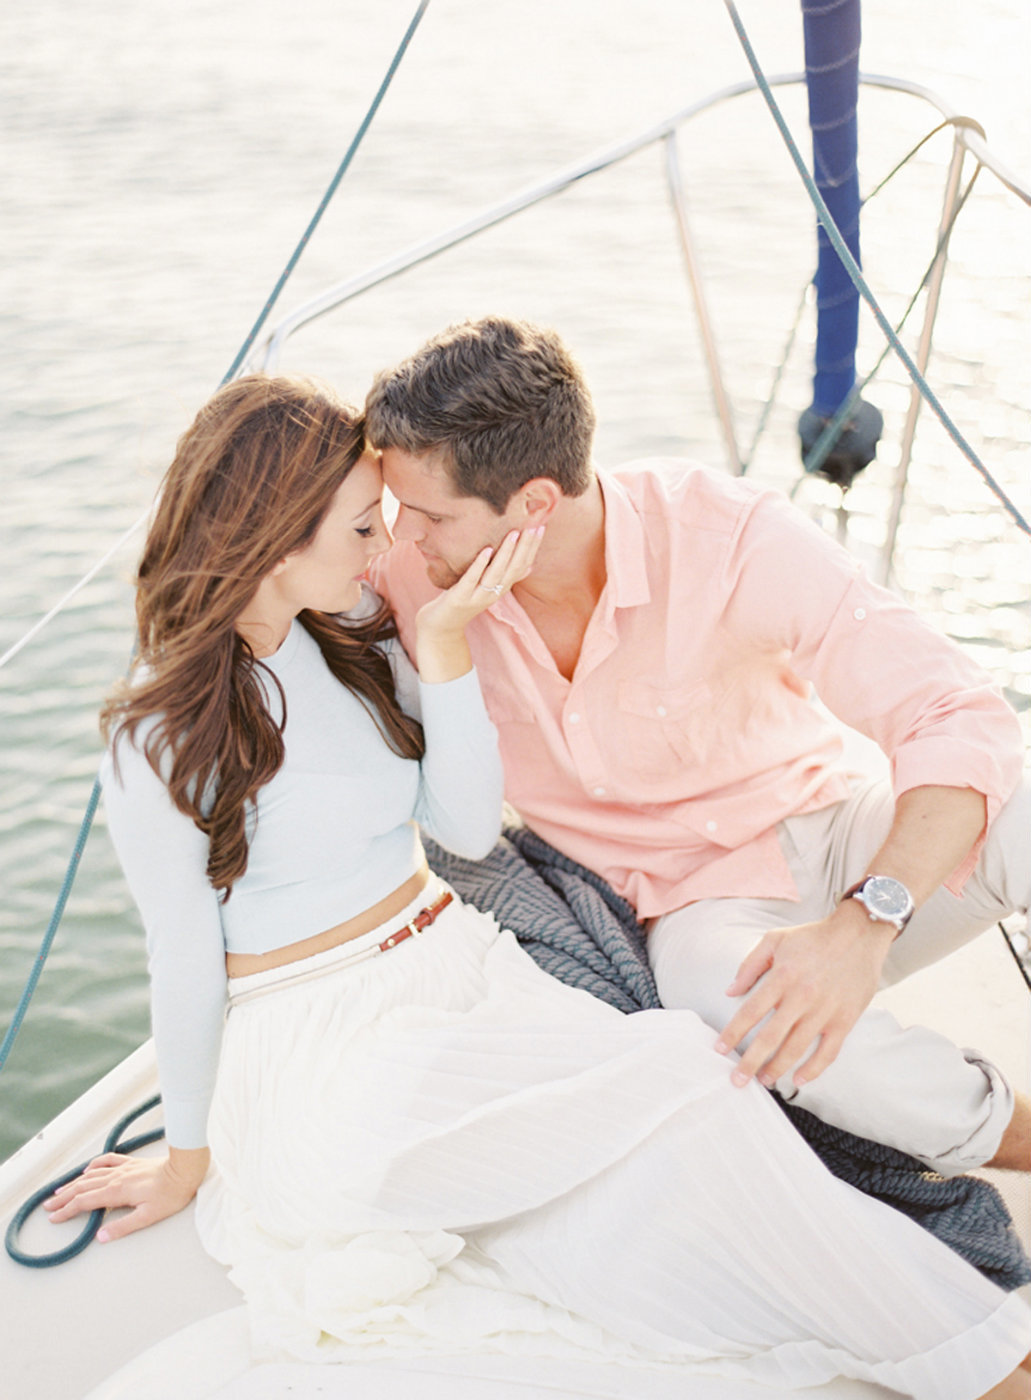 kayla_jon_vizcaya_sailboat_engagement_melanie_gabrielle_photography_591